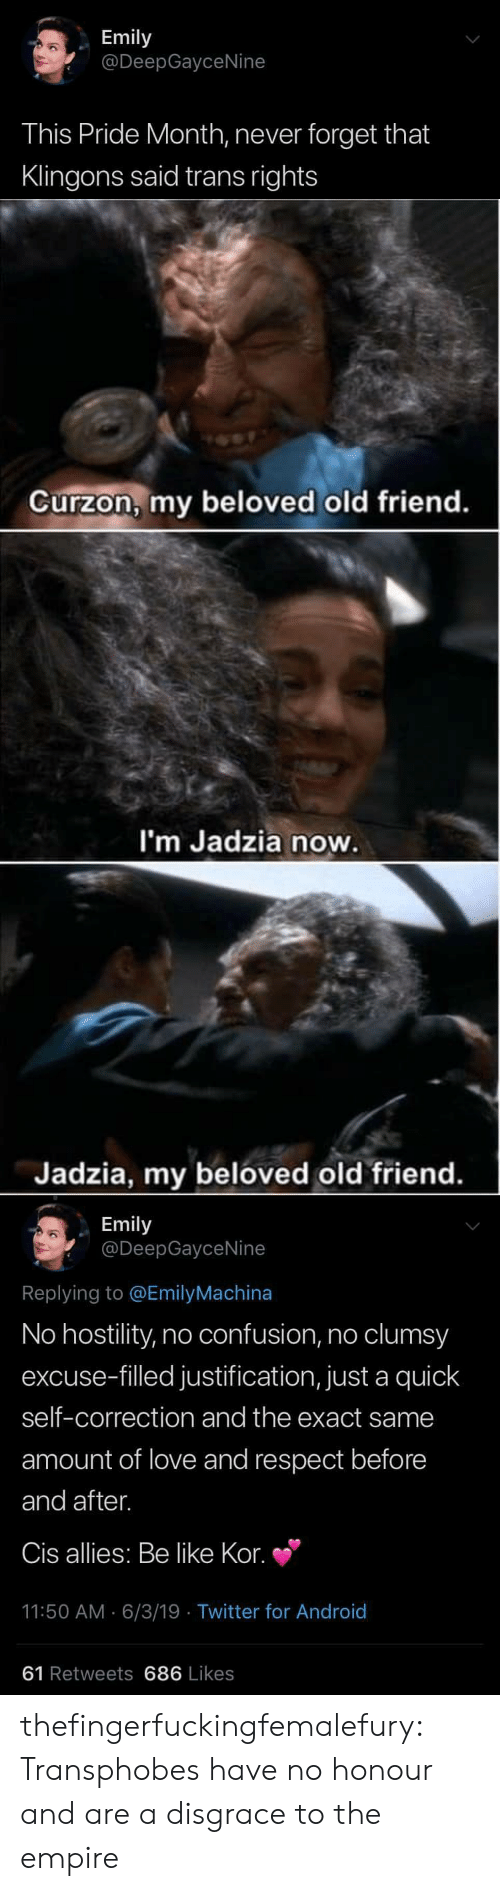 allies: Emily  @DeepGayceNine  This Pride Month, never forget that  Klingons said trans rights   Curzon, my beloved old friend.  I'm Jadzia now.  Jadzia, my beloved old friend.   Emily  @DeepGayceNine  Replying to @EmilyMachina  No hostility, no confusion, no clumsy  excuse-filled justification, just a quick  self-correction and the exact same  amount of love and respect before  and after.  Cis allies: Be like Kor.  11:50 AM 6/3/19 Twitter for And roid  61 Retweets 686 Likes thefingerfuckingfemalefury: Transphobes have no honour and are a disgrace to the empire